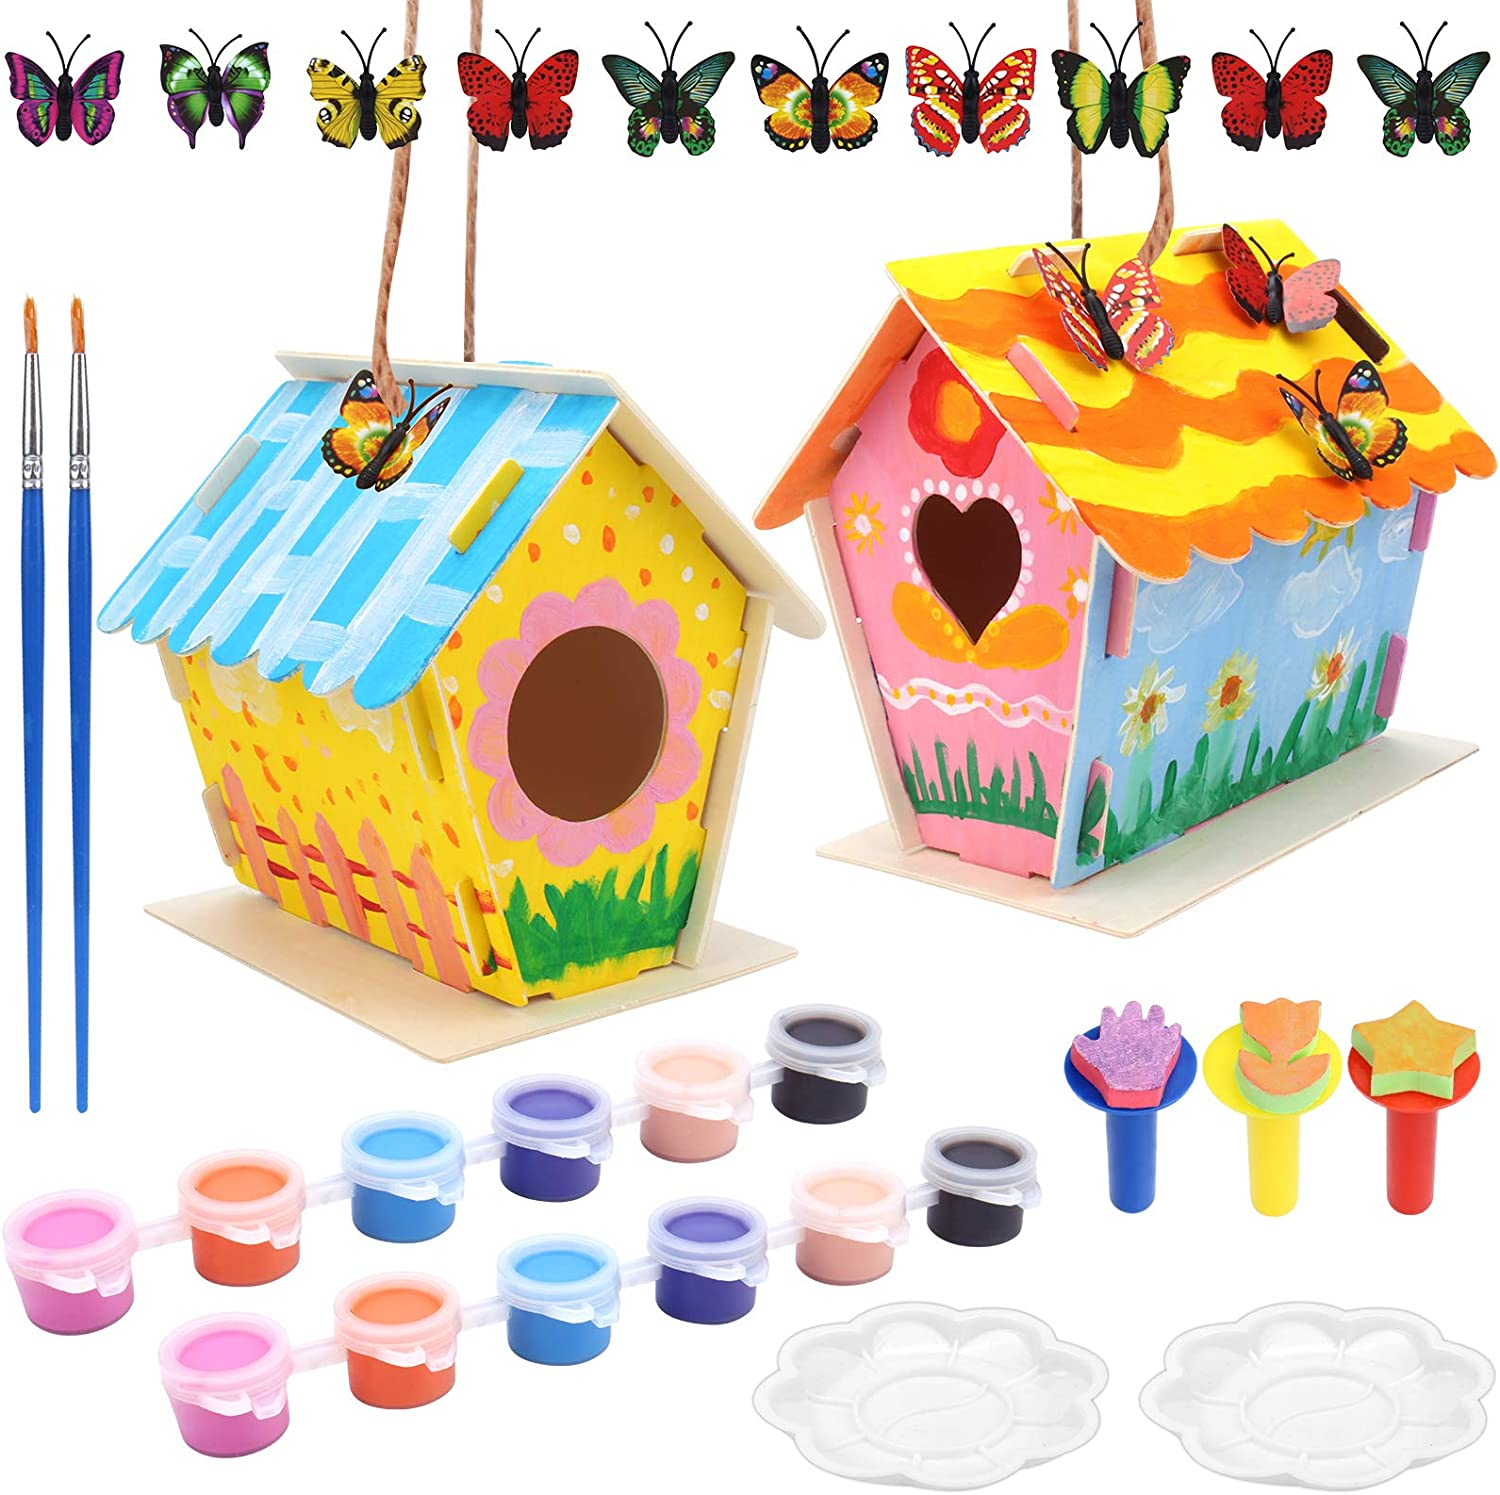 Mukum 21PCS Crafts for Kids Bird House Kit Arts and Crafts Wood DIY Build and Paint Birdhouse Kits for Kids to Build Wooden Bird House Crafts for Boys and Girls